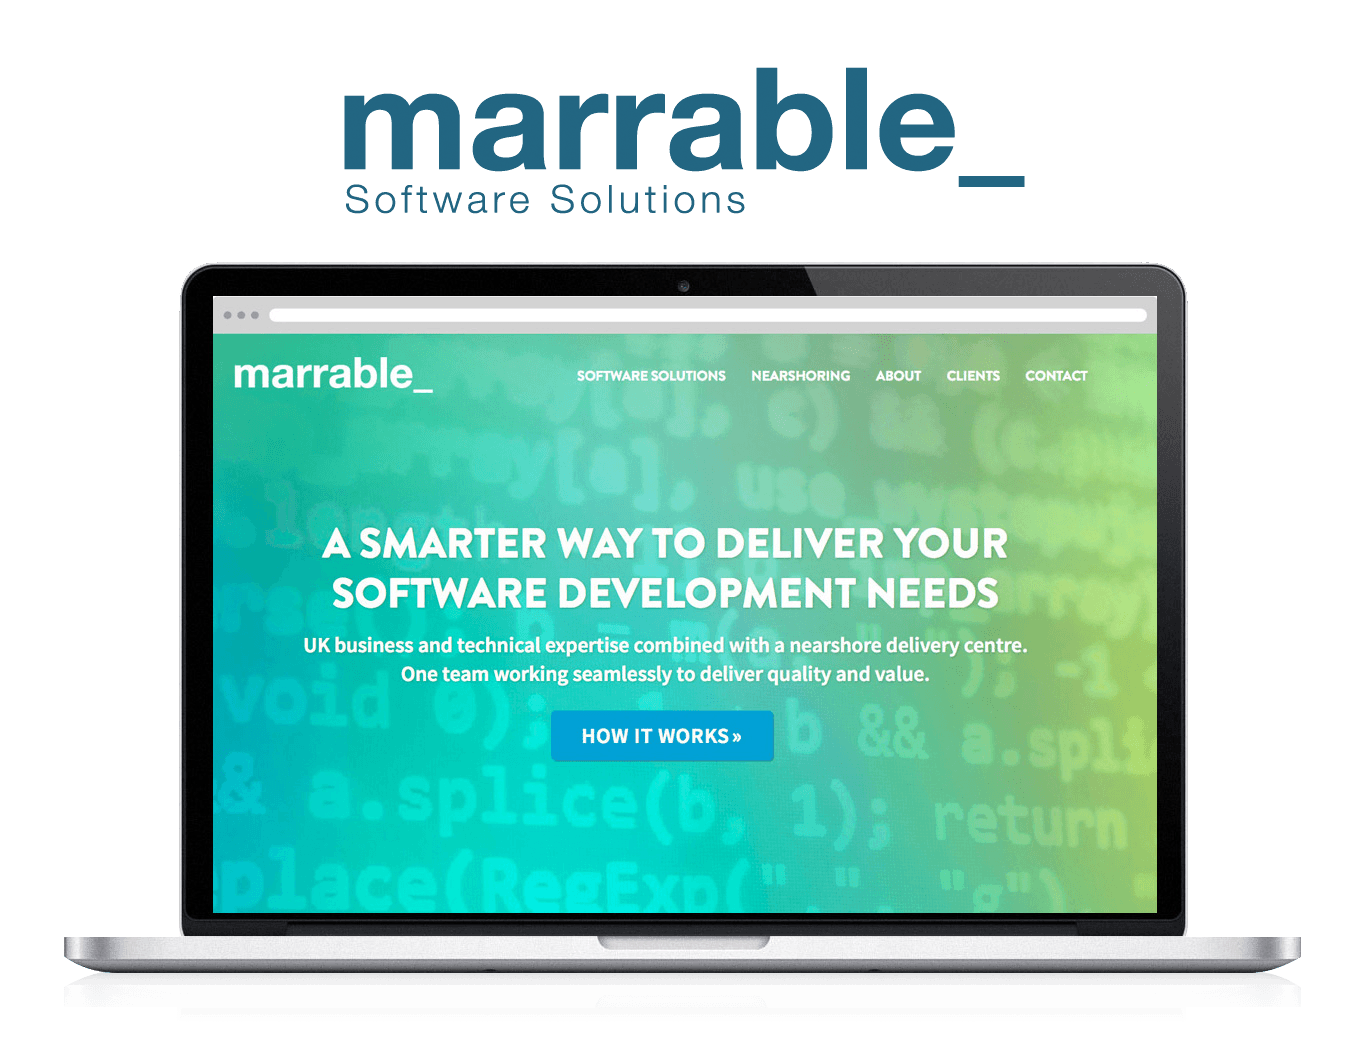 Marrable Software Solutions